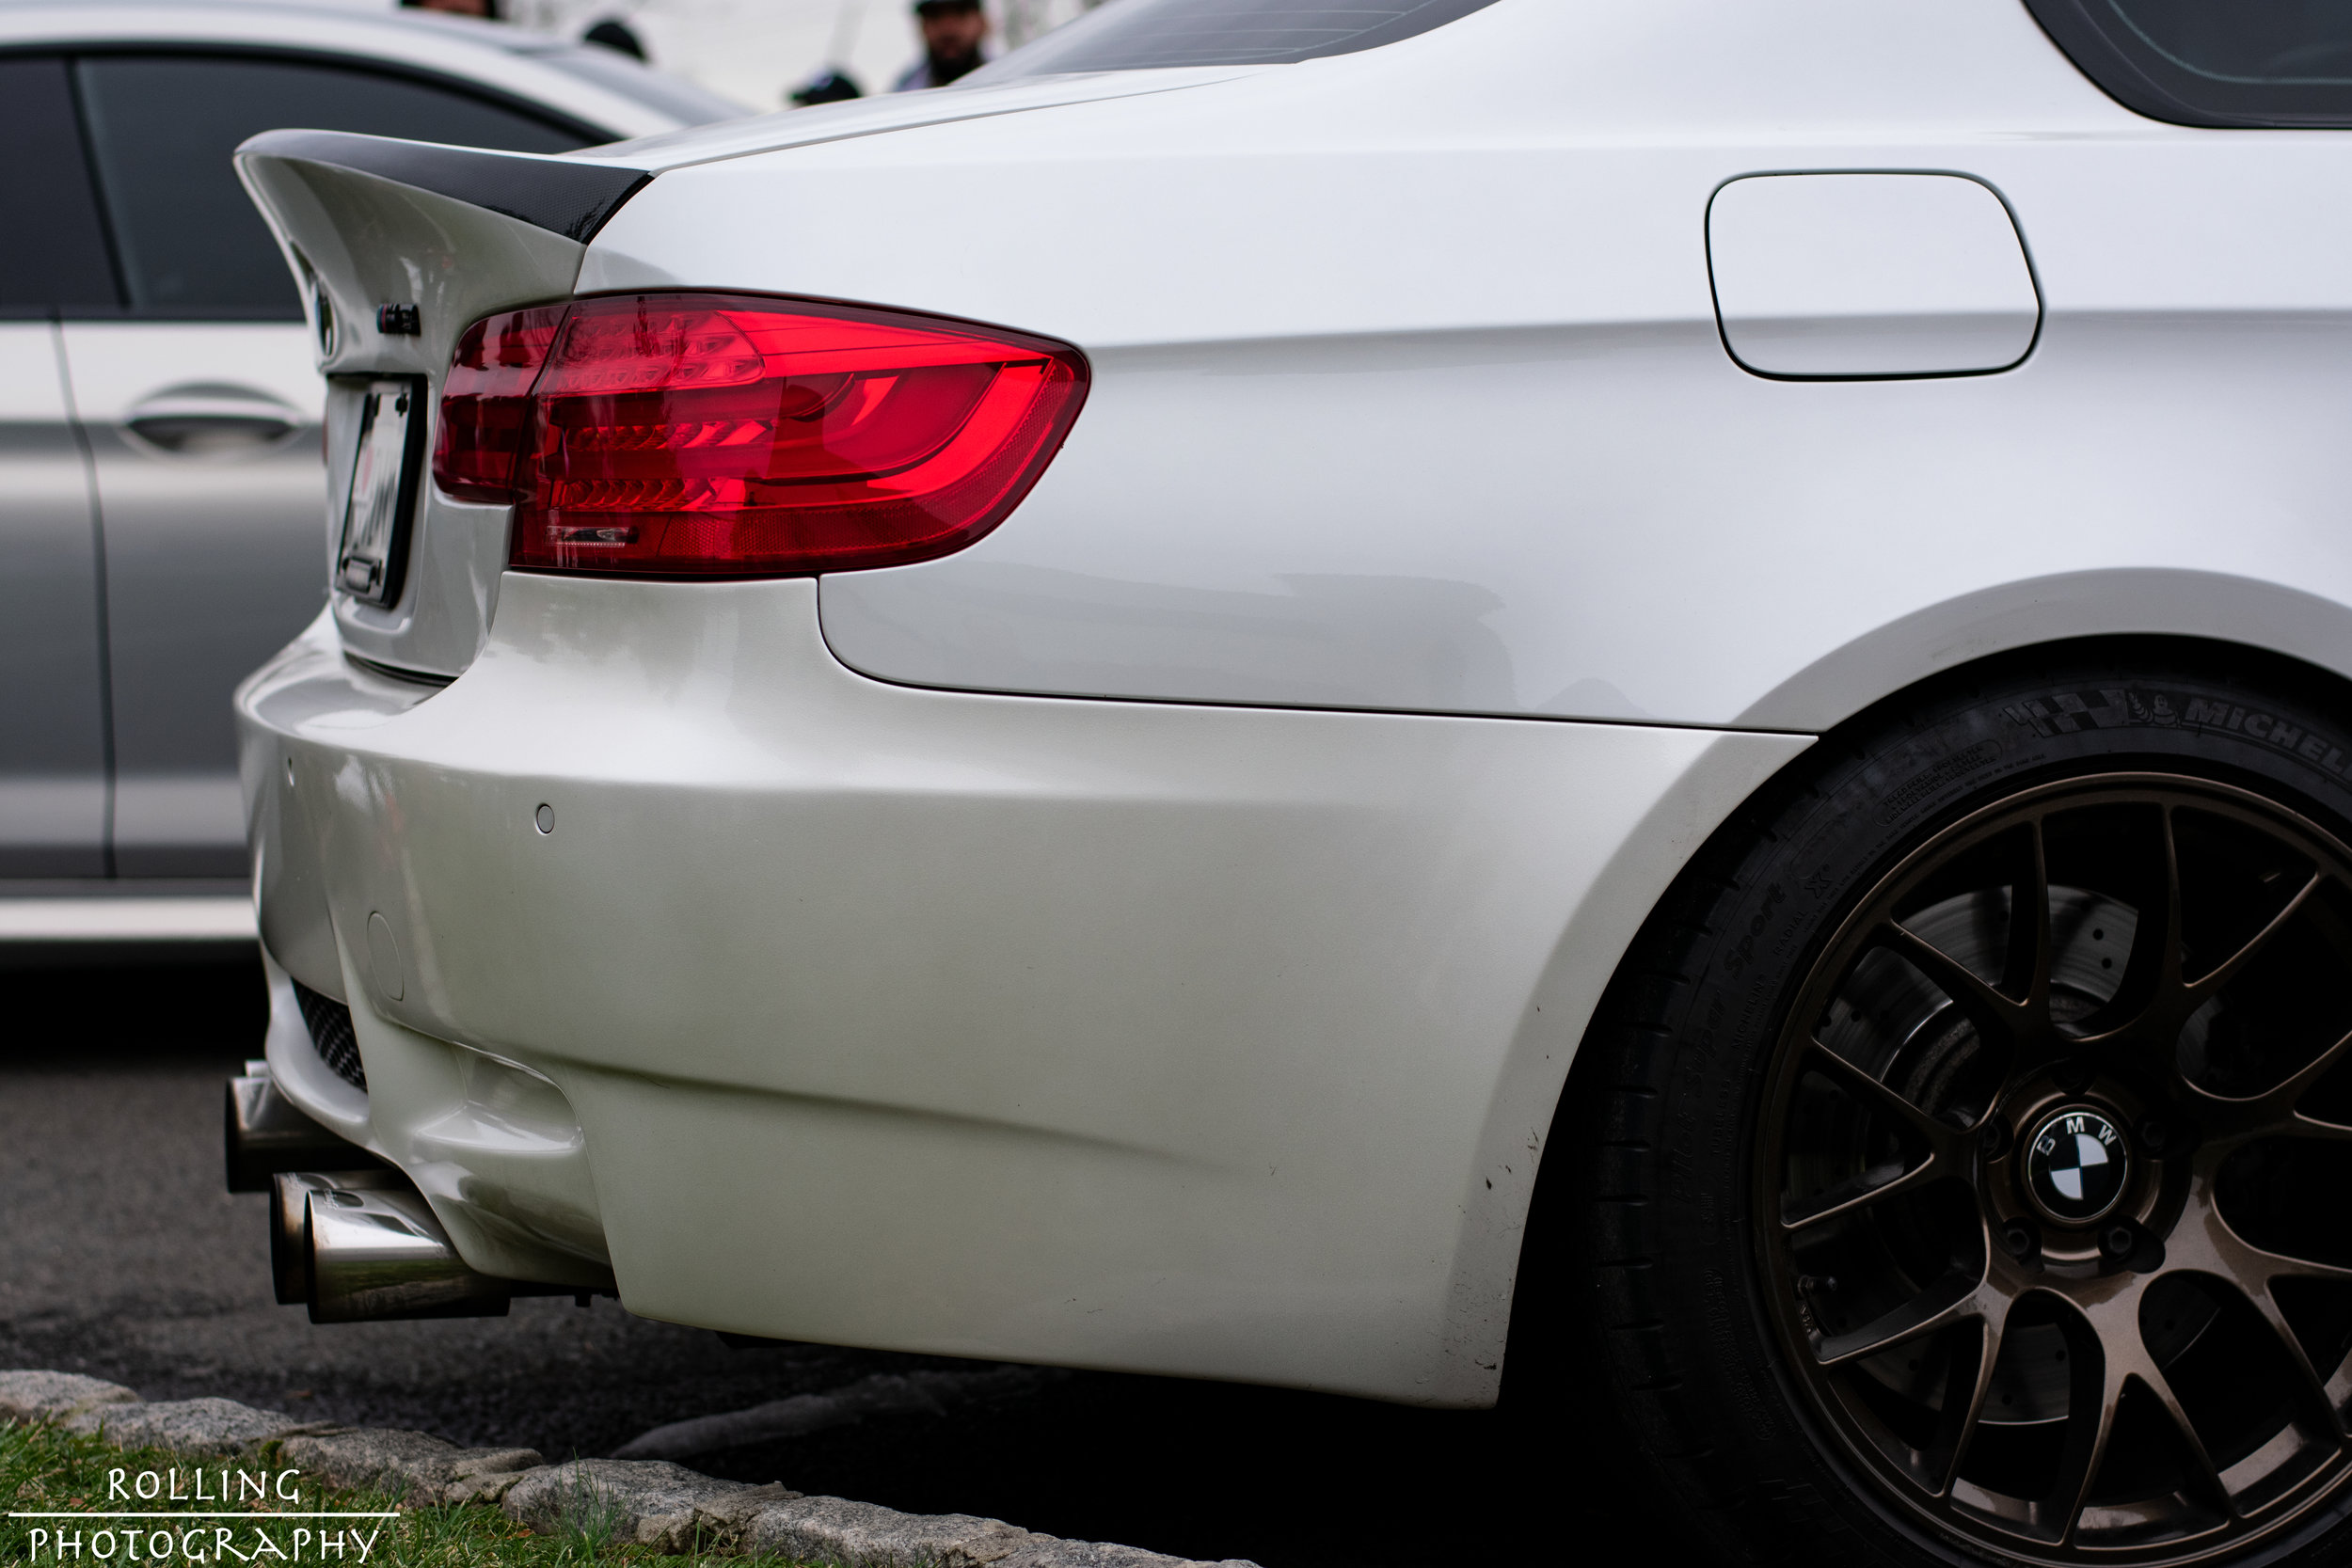 FLAM3Z Right Rear Profile.jpg